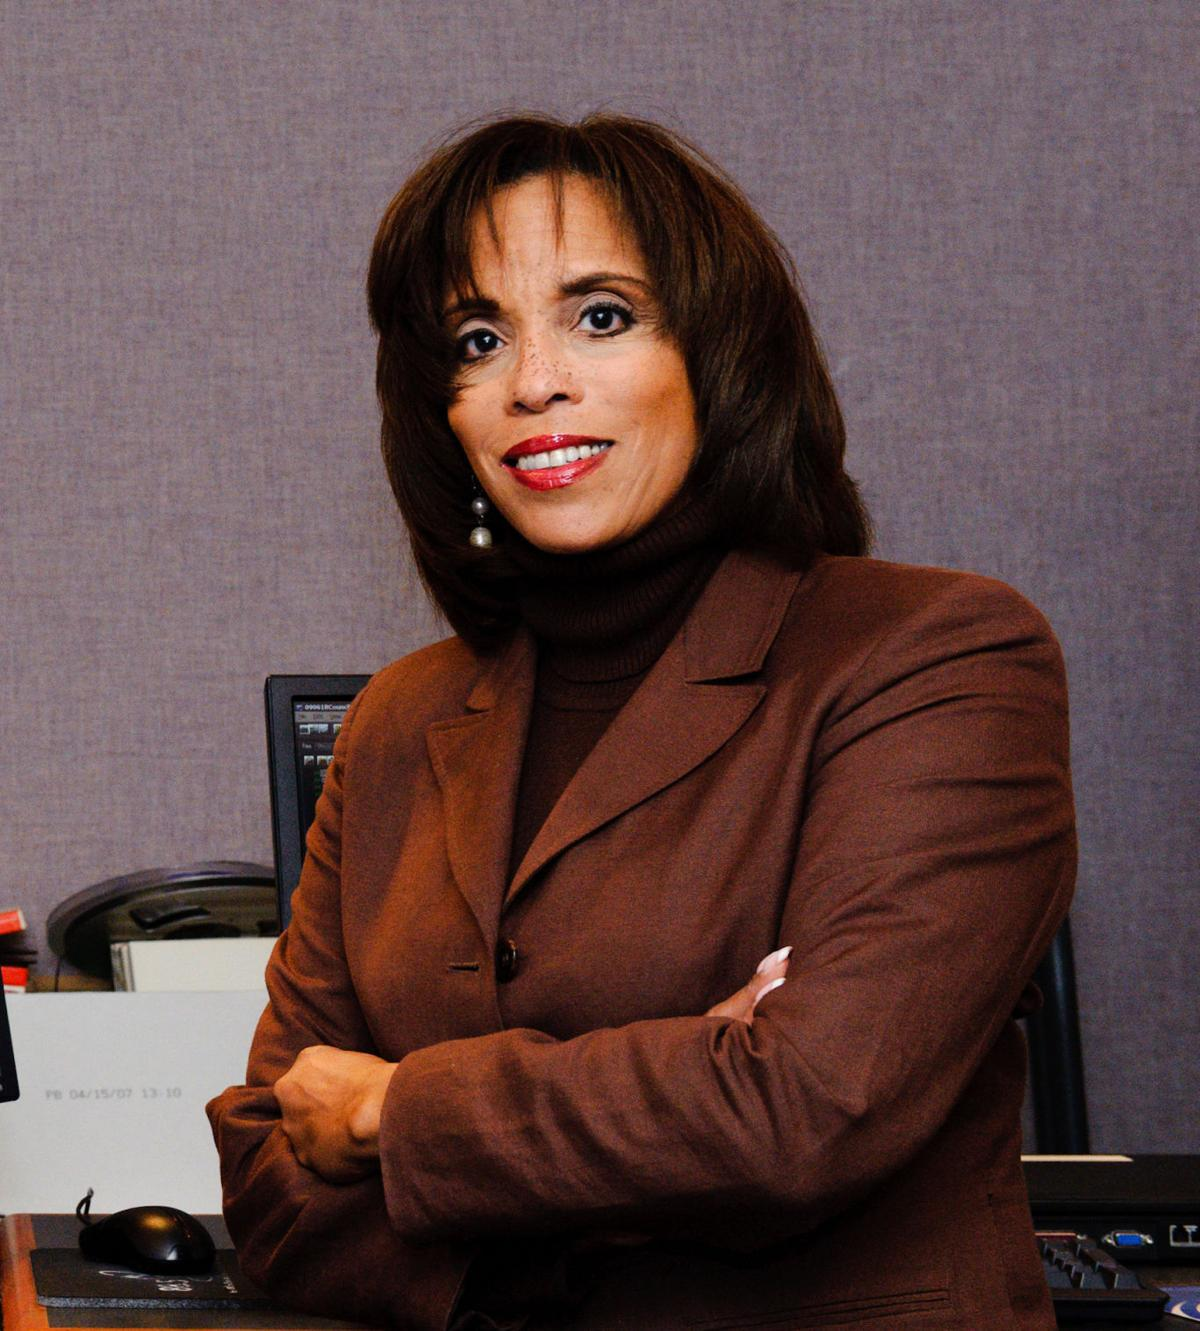 Former WXII news anchor Denise Franklin remembered as kind